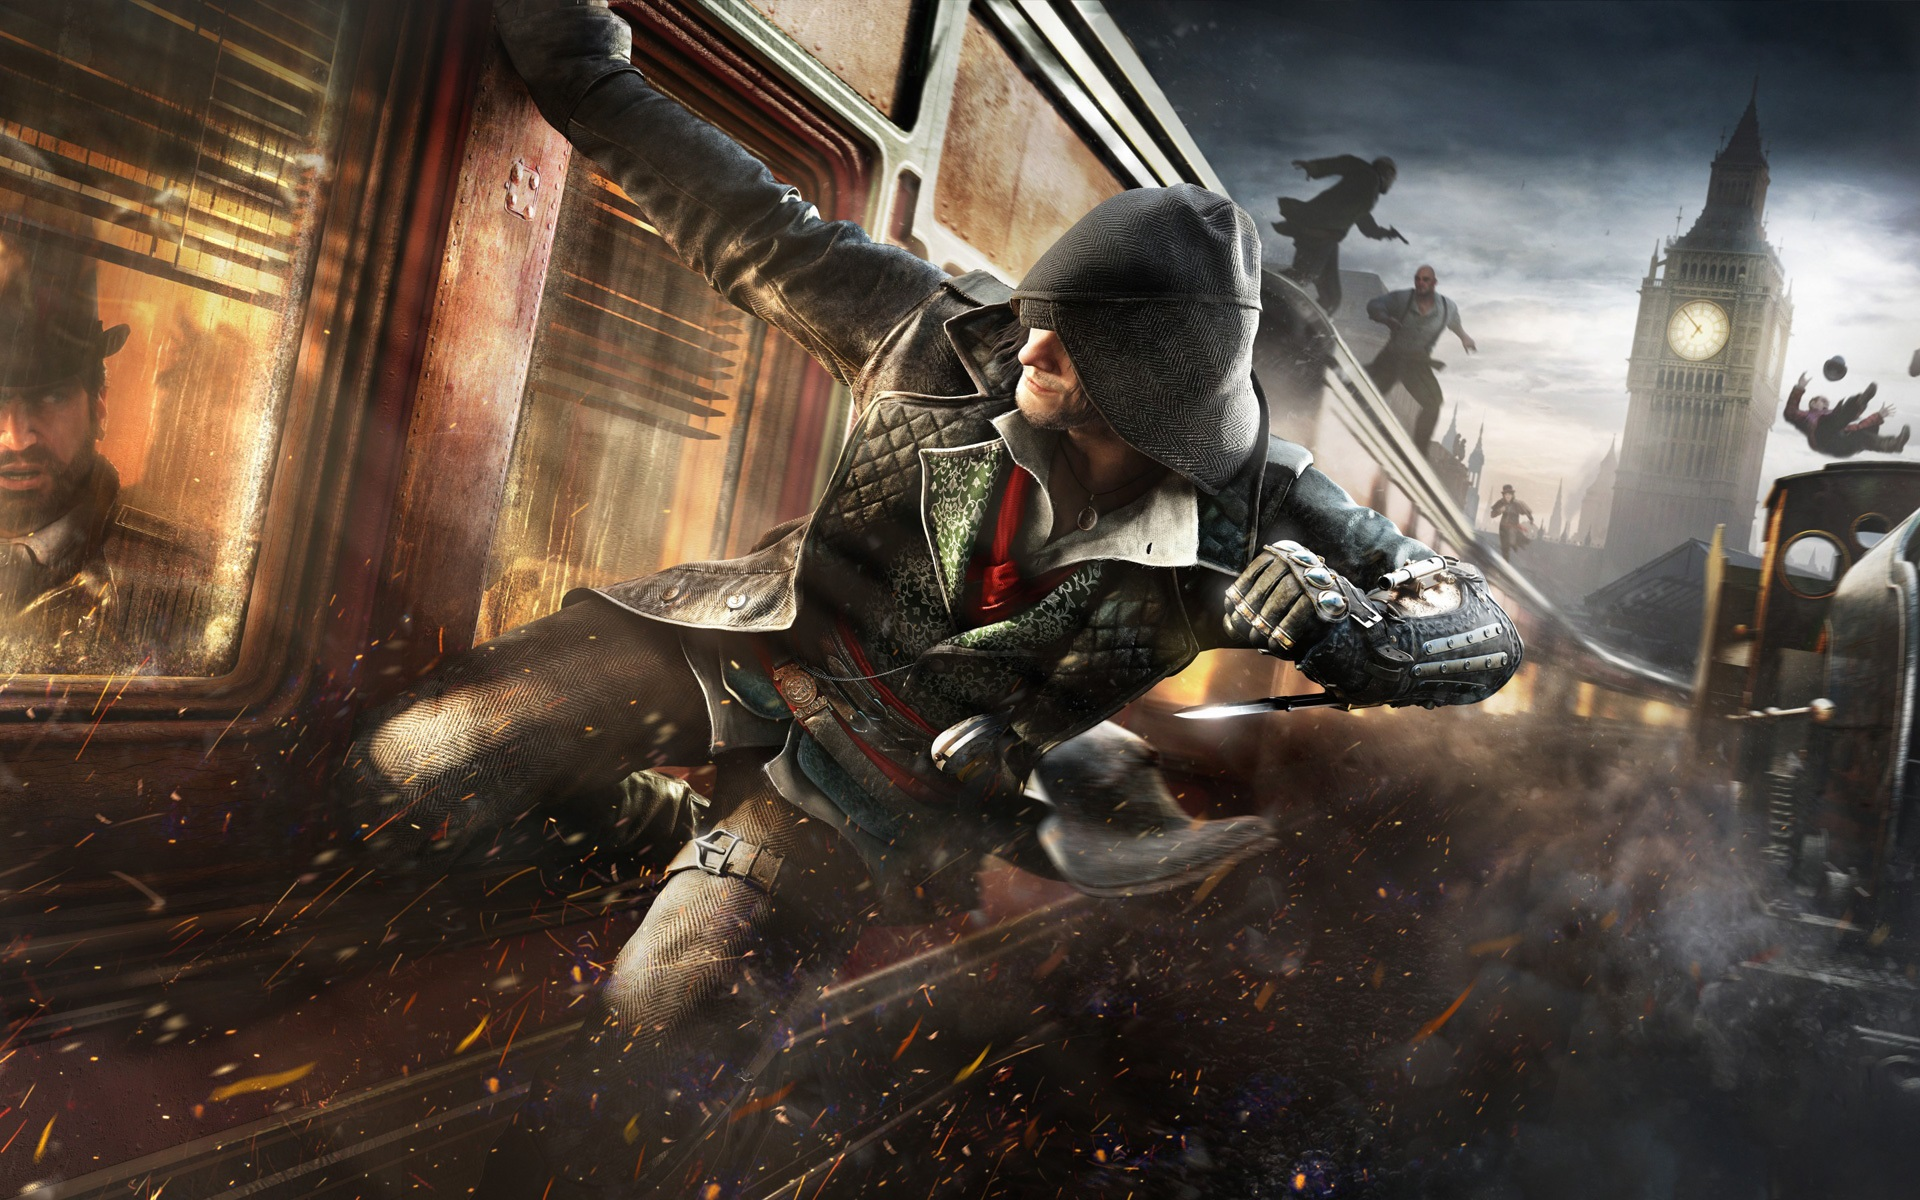 Toilet Paper Roll Icon furthermore Skyrim Nordic Dagger 450716138 as well Hindustan Flag as well Japanese Dragon Painting At Nikko also Assassin S Creed Syndicate Action Train 1920x1200. on ancient wallpaper